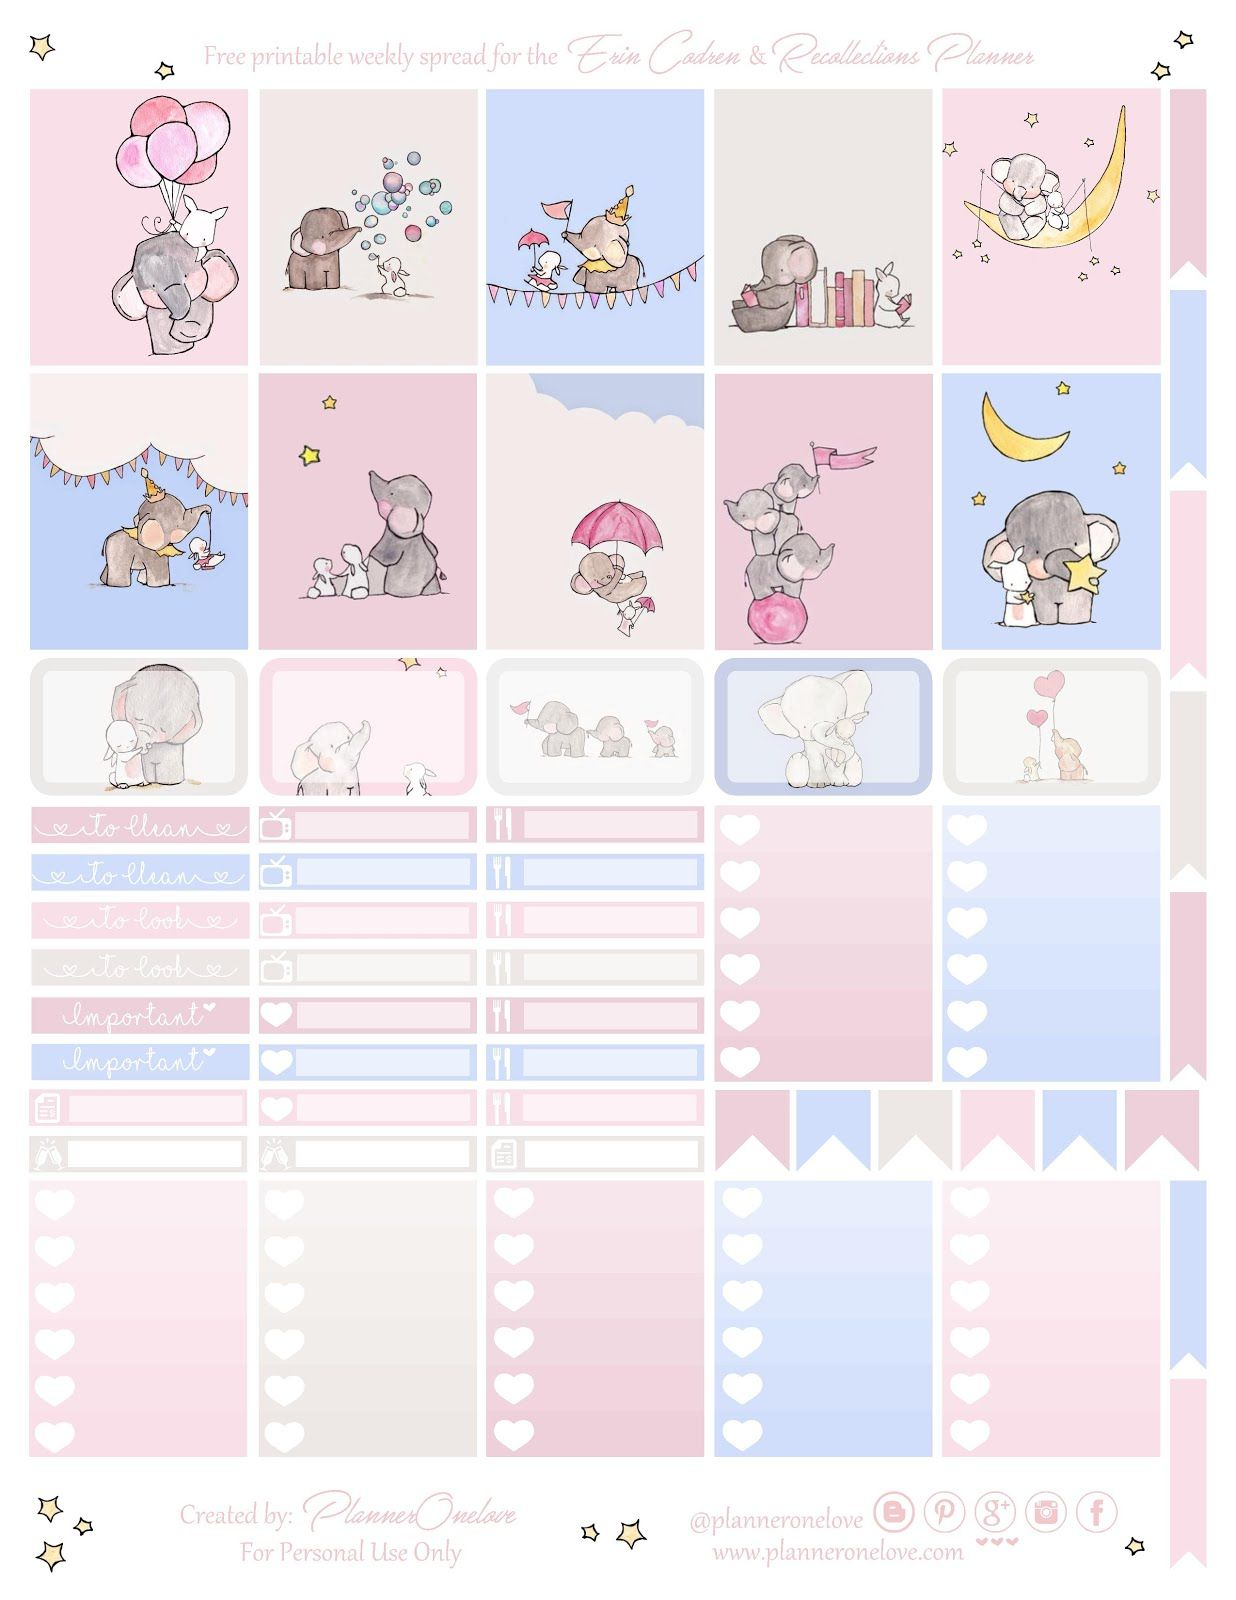 Free Printable Elephant Amp Bunny Planner Stickers From Planner Onelove